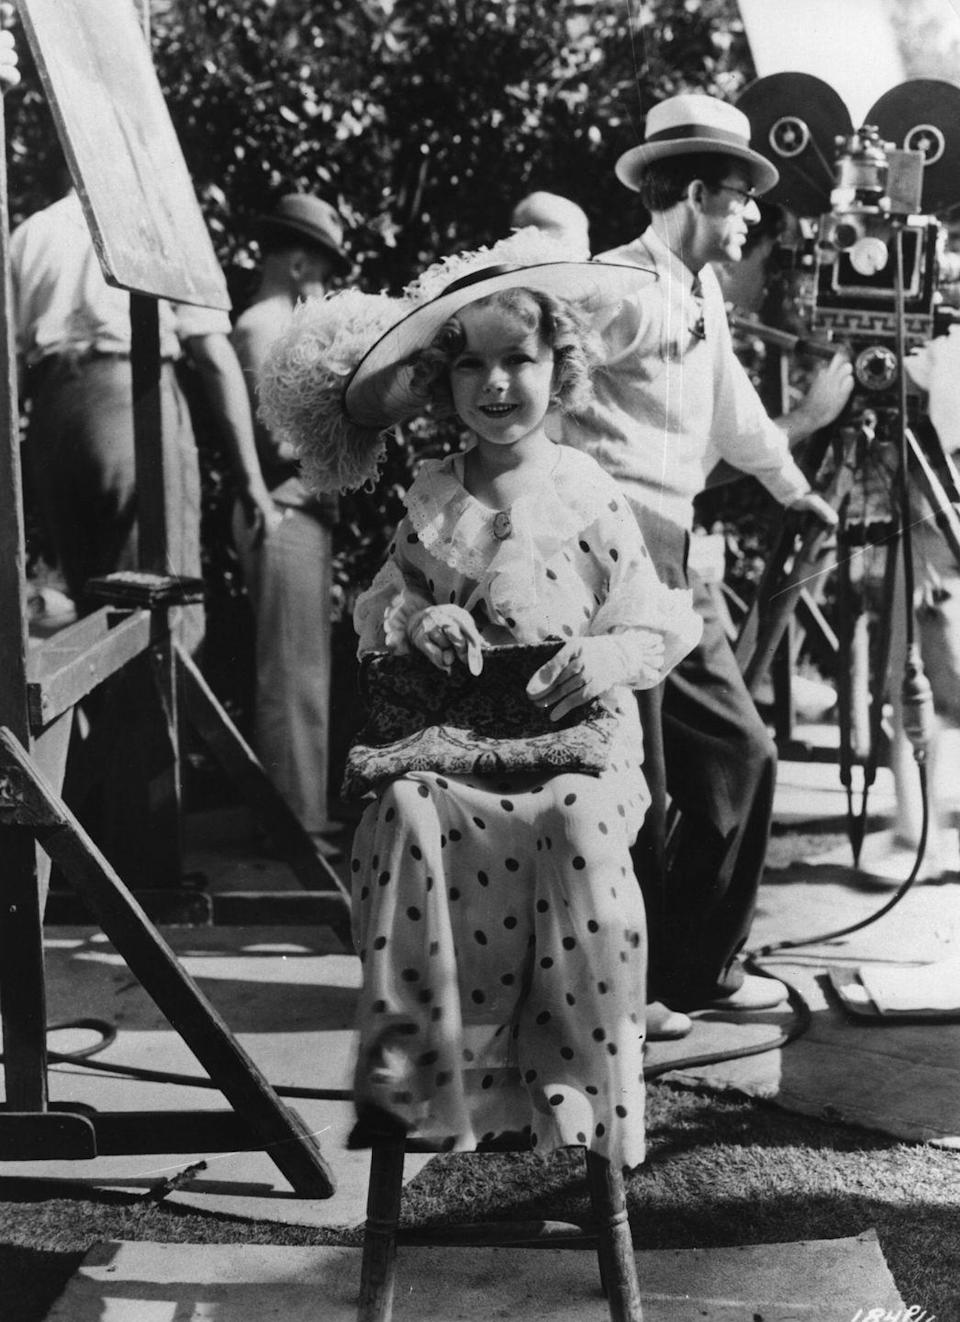 <p>Eight-year-old child actress, Shirley Temple, takes a break during a busy day of filming. The actress starred in films like <em>Heidi </em>and <em>The Little Princess </em>throughout out her career and started in the industry at the age of three. </p>